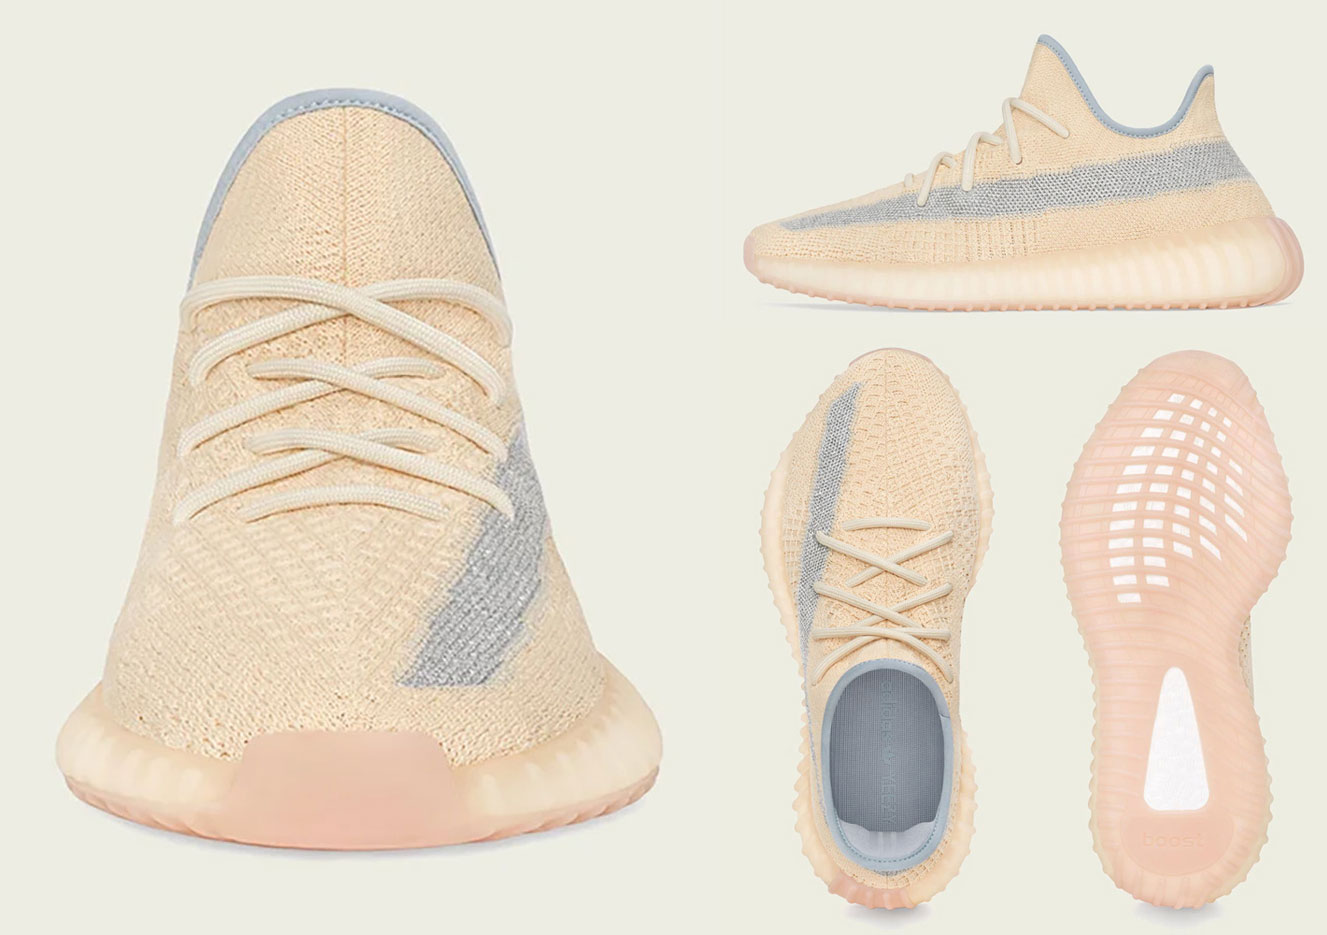 yeezy-boost-350-v2-linen-adidas-outfits